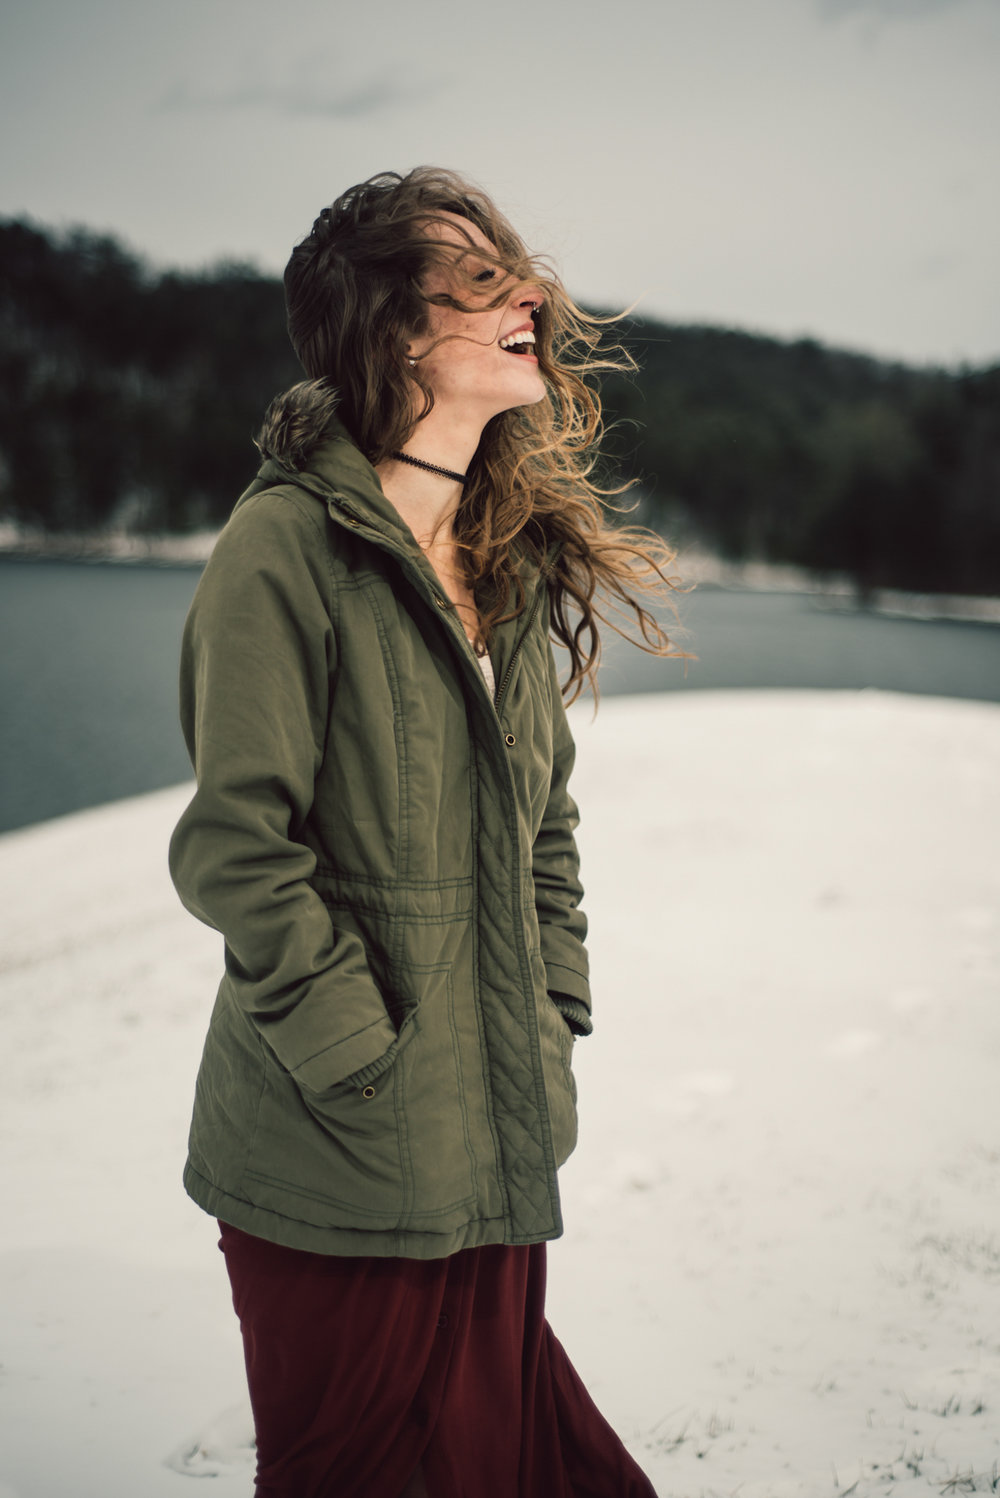 Moody Snowy Portrait Session at Lake Arrowhead in Luray Virginia_5.JPG